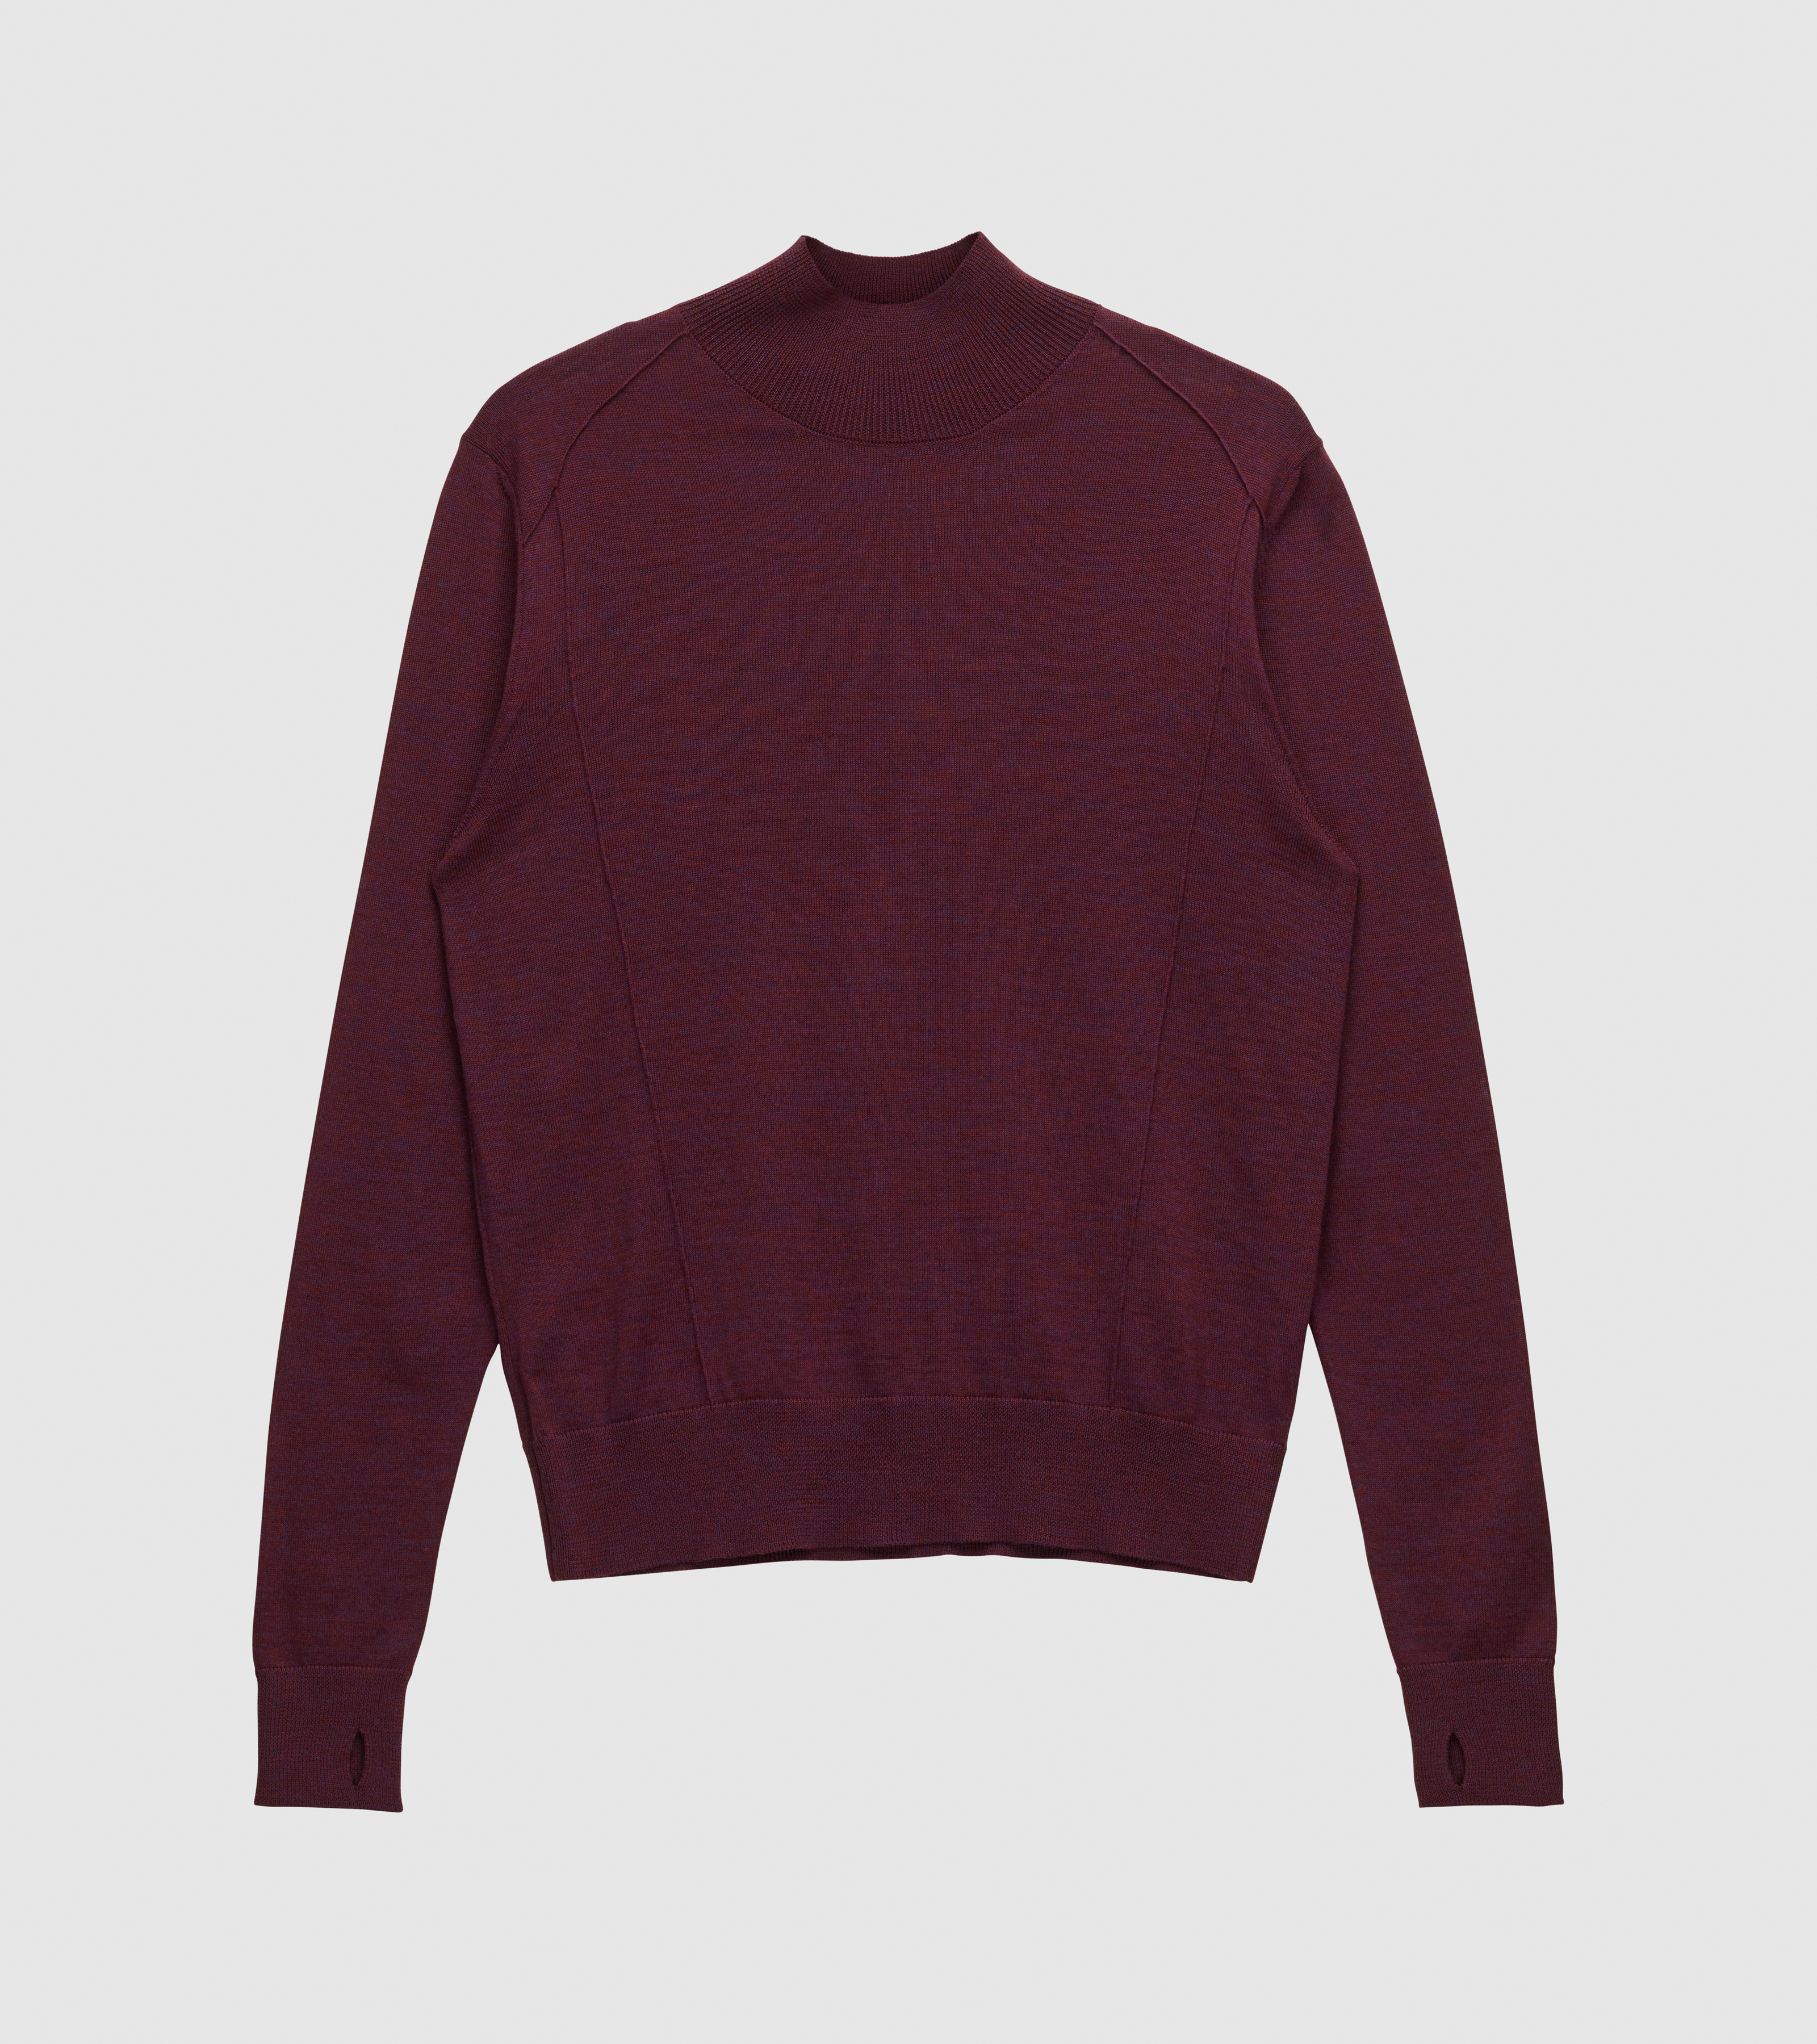 Nova Sweater Aubergine